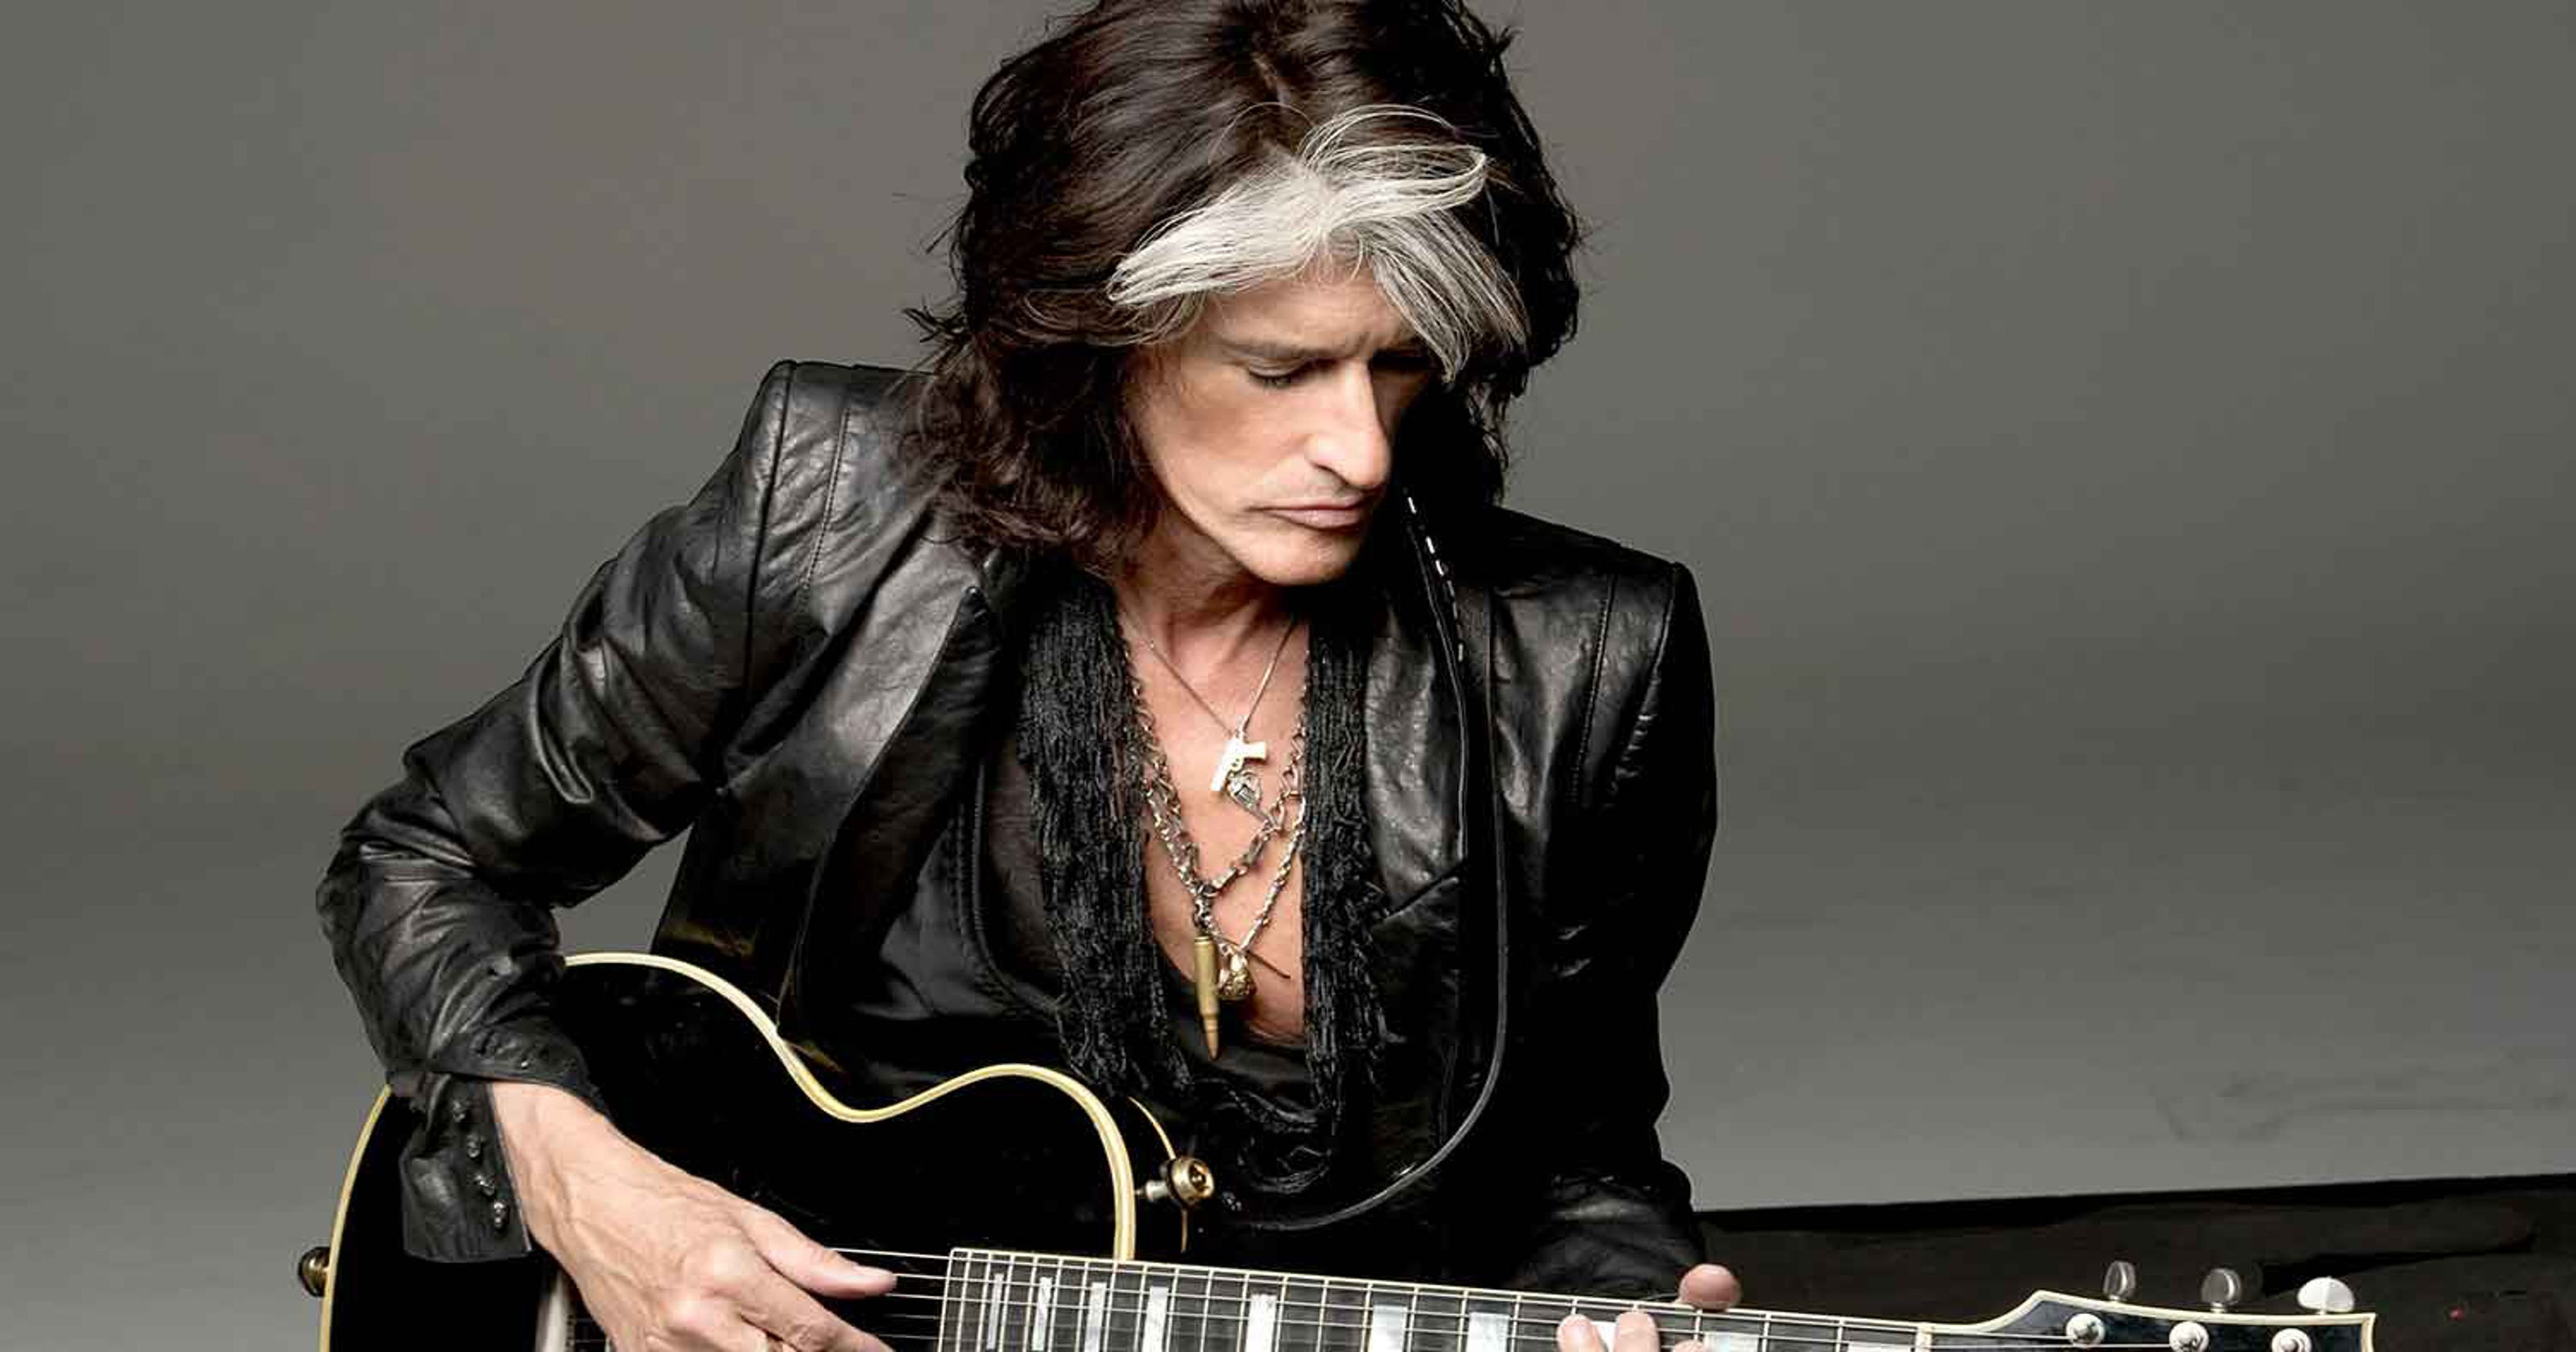 Interview: Joe Perry reflects on life in Aerosmith